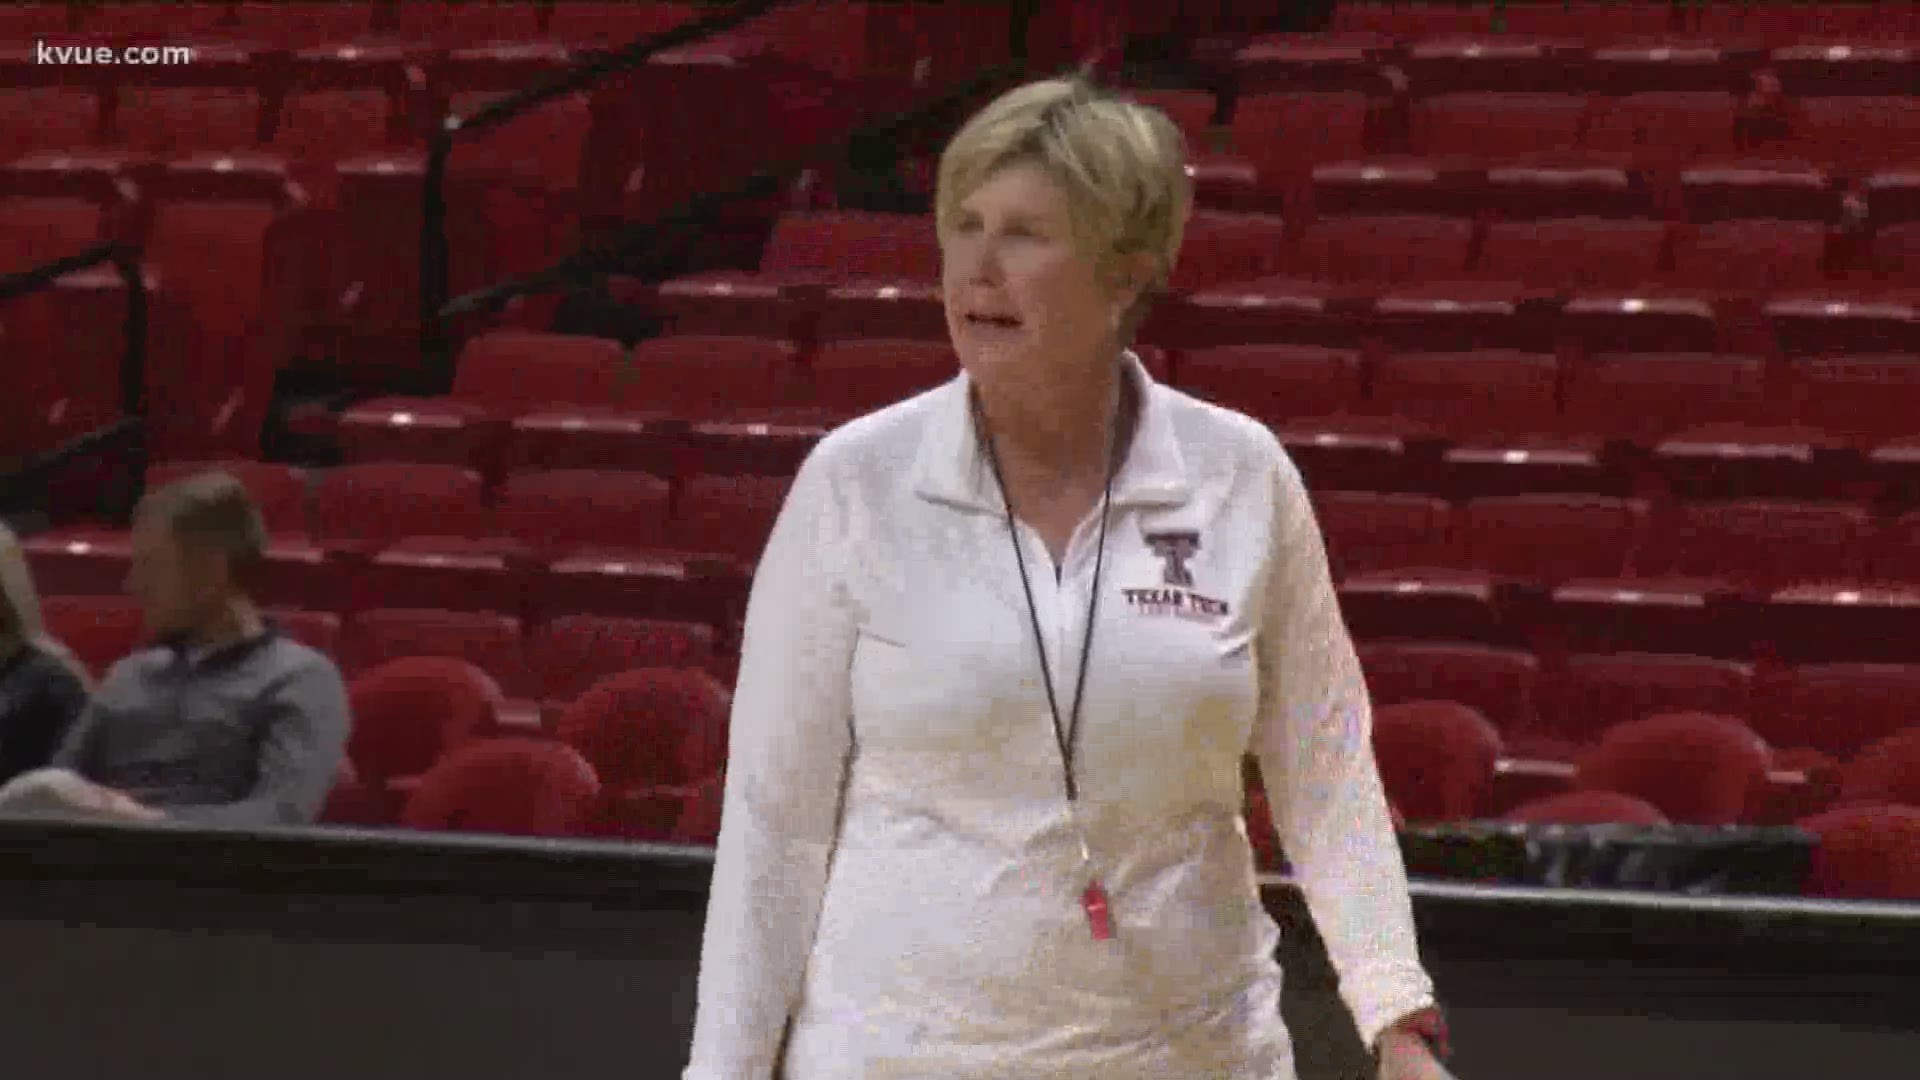 Texas Tech Women S Basketball Players Allege Abuse Report Says Kvue Com